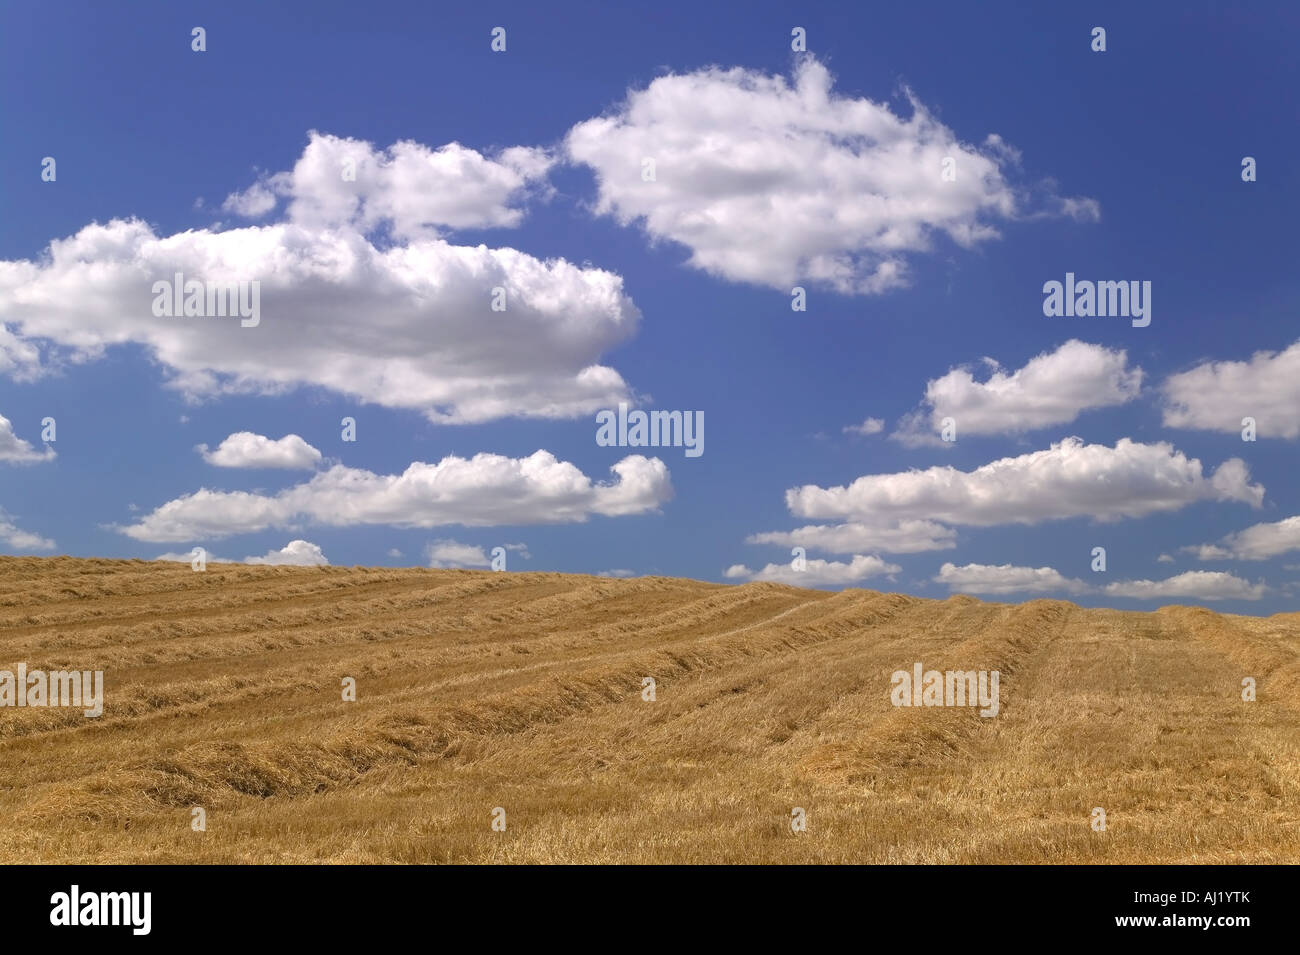 Golden field of cut hay against a beautiful blue cloudy sky Stock Photo